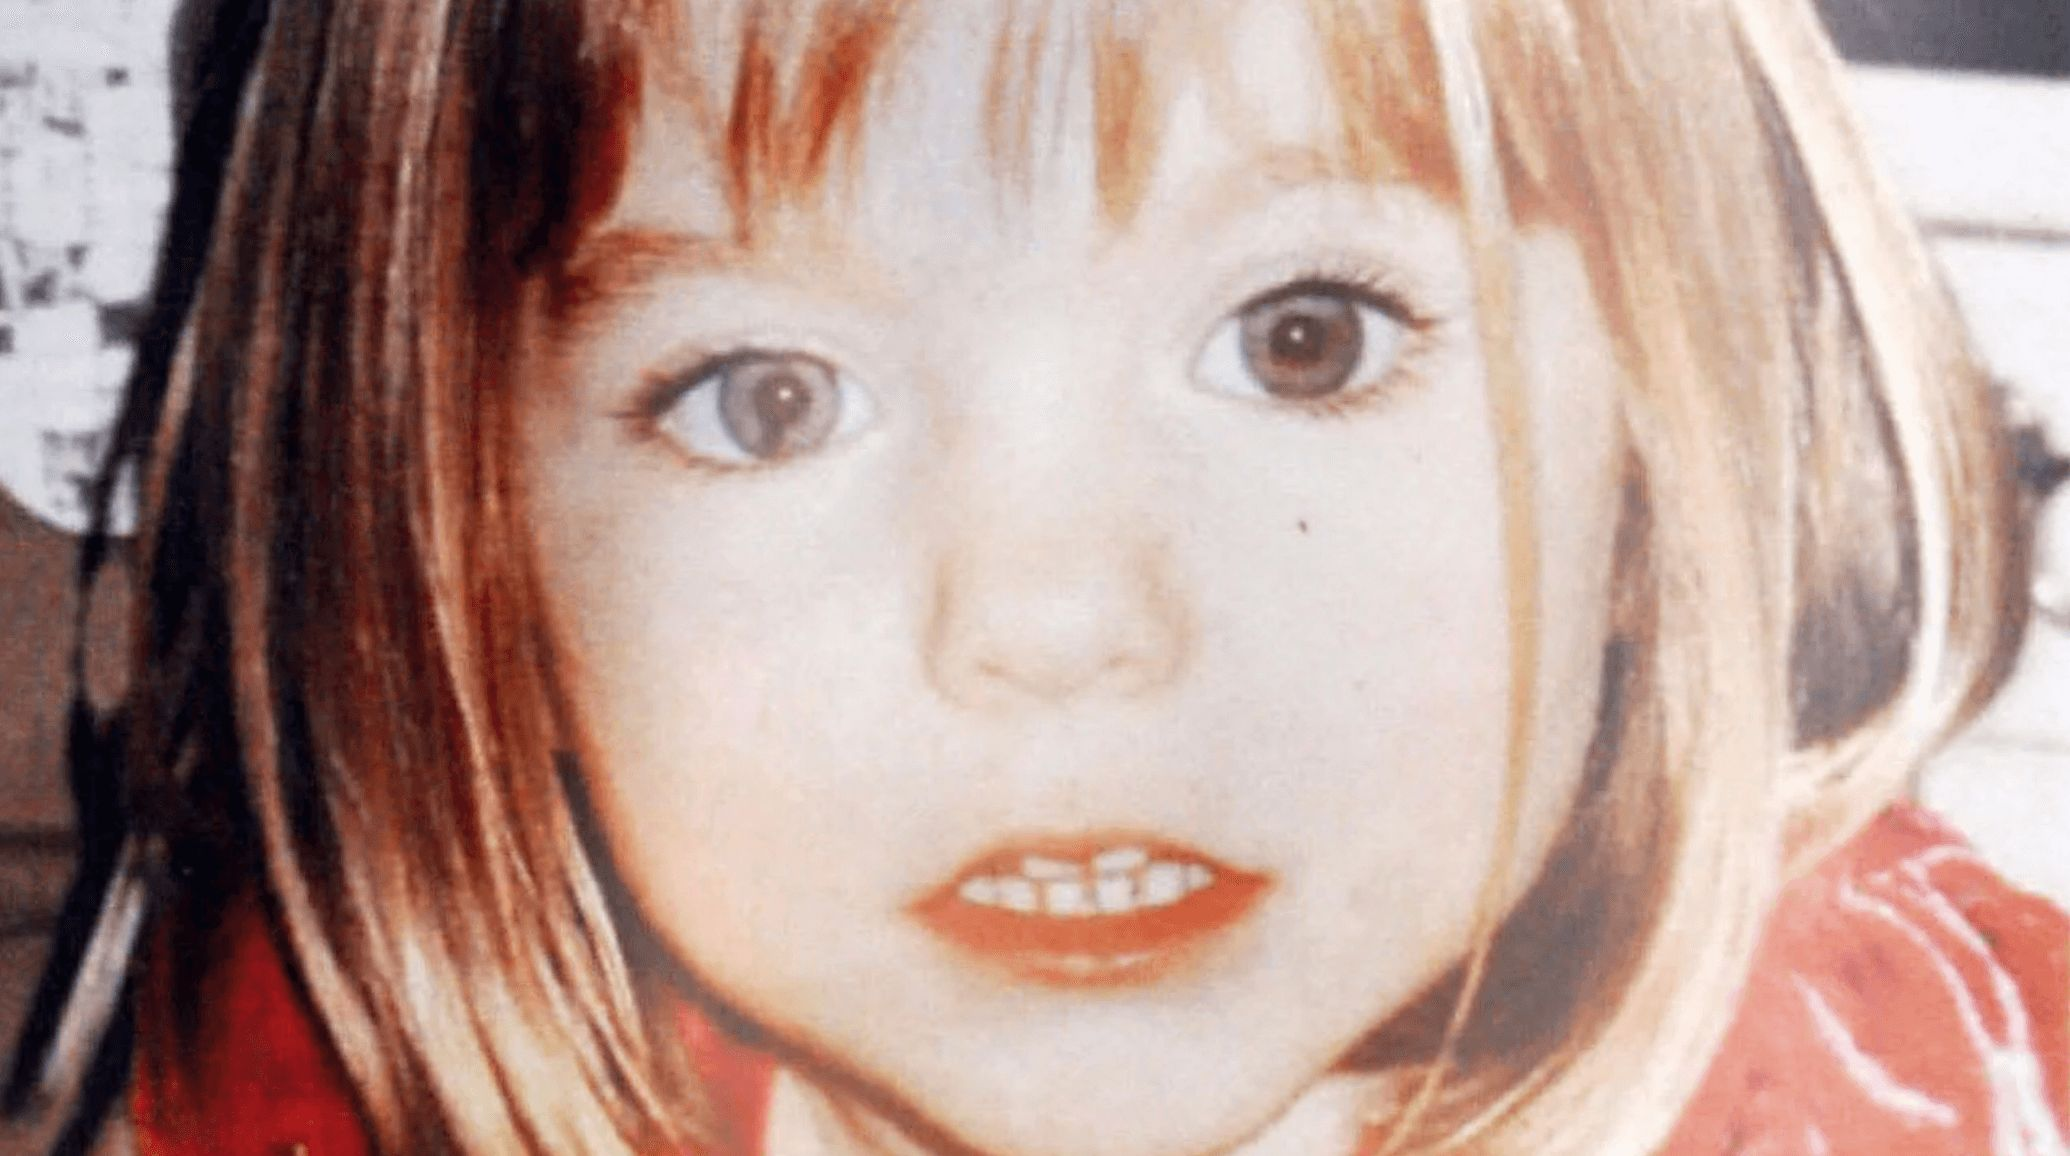 Image may contain: Netflix true crime, best true crime, true crime, netflix, madeleine mccann, Girl, Art, Drawing, Portrait, Photo, Photography, Outdoors, Smile, Female, Head, Person, Human, Face